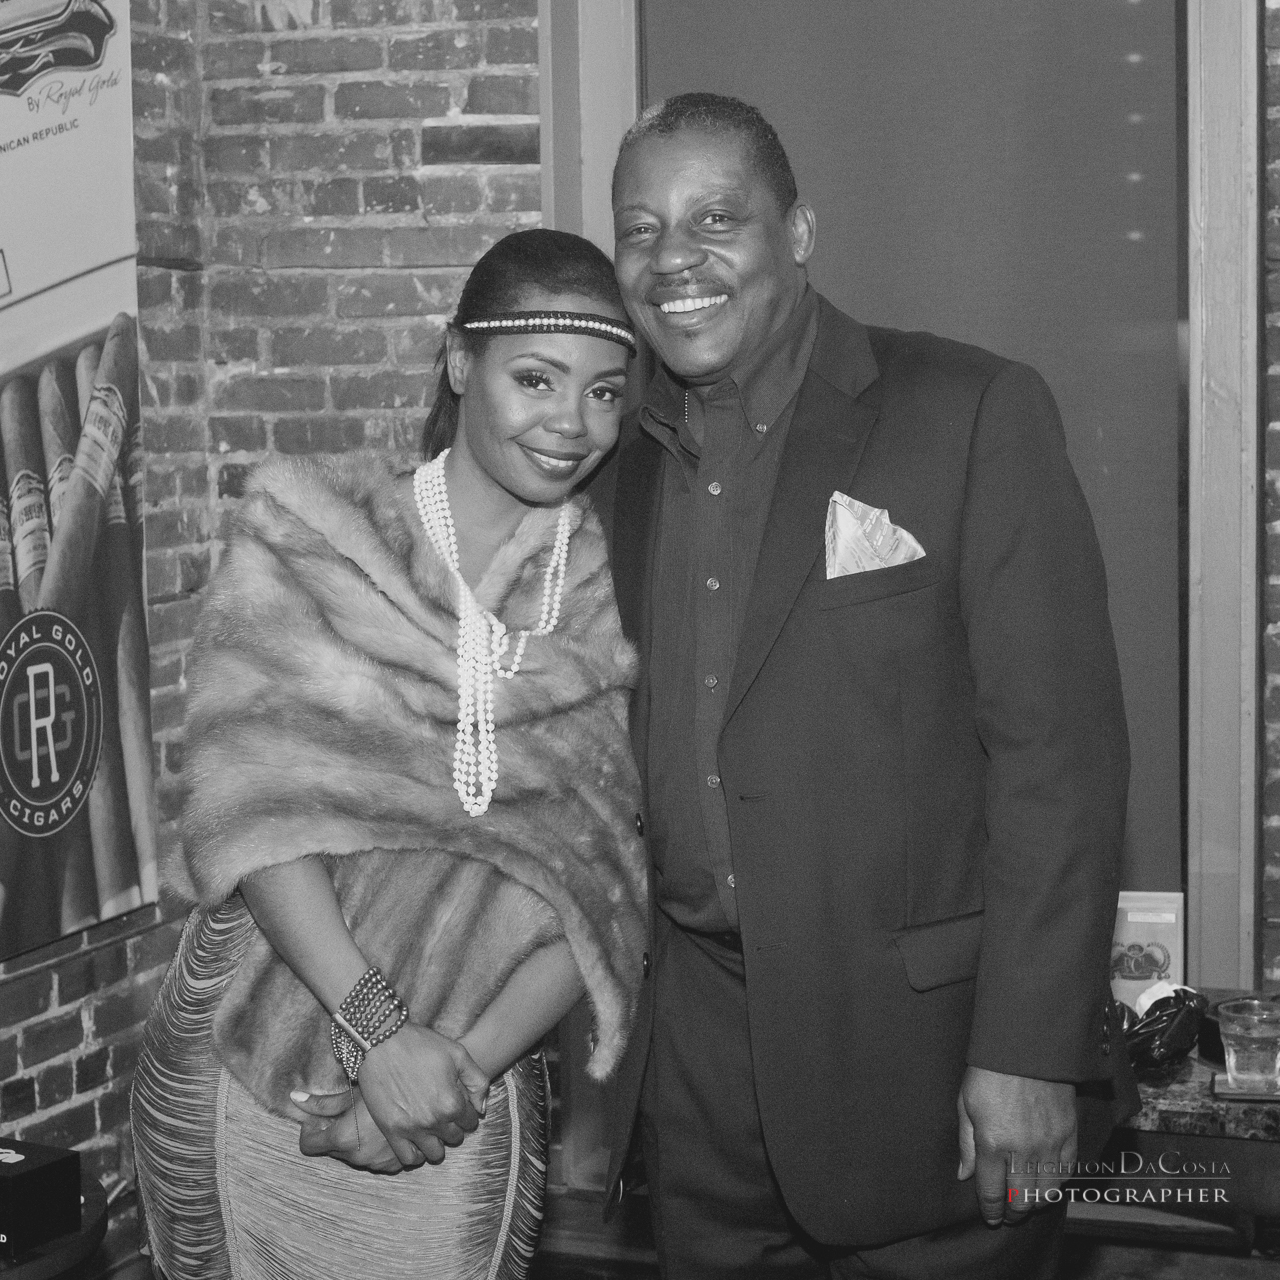 Jacksonville Downtown Cigar Lounge-Party-Leighton DaCosta-Photographer-web-72.jpg